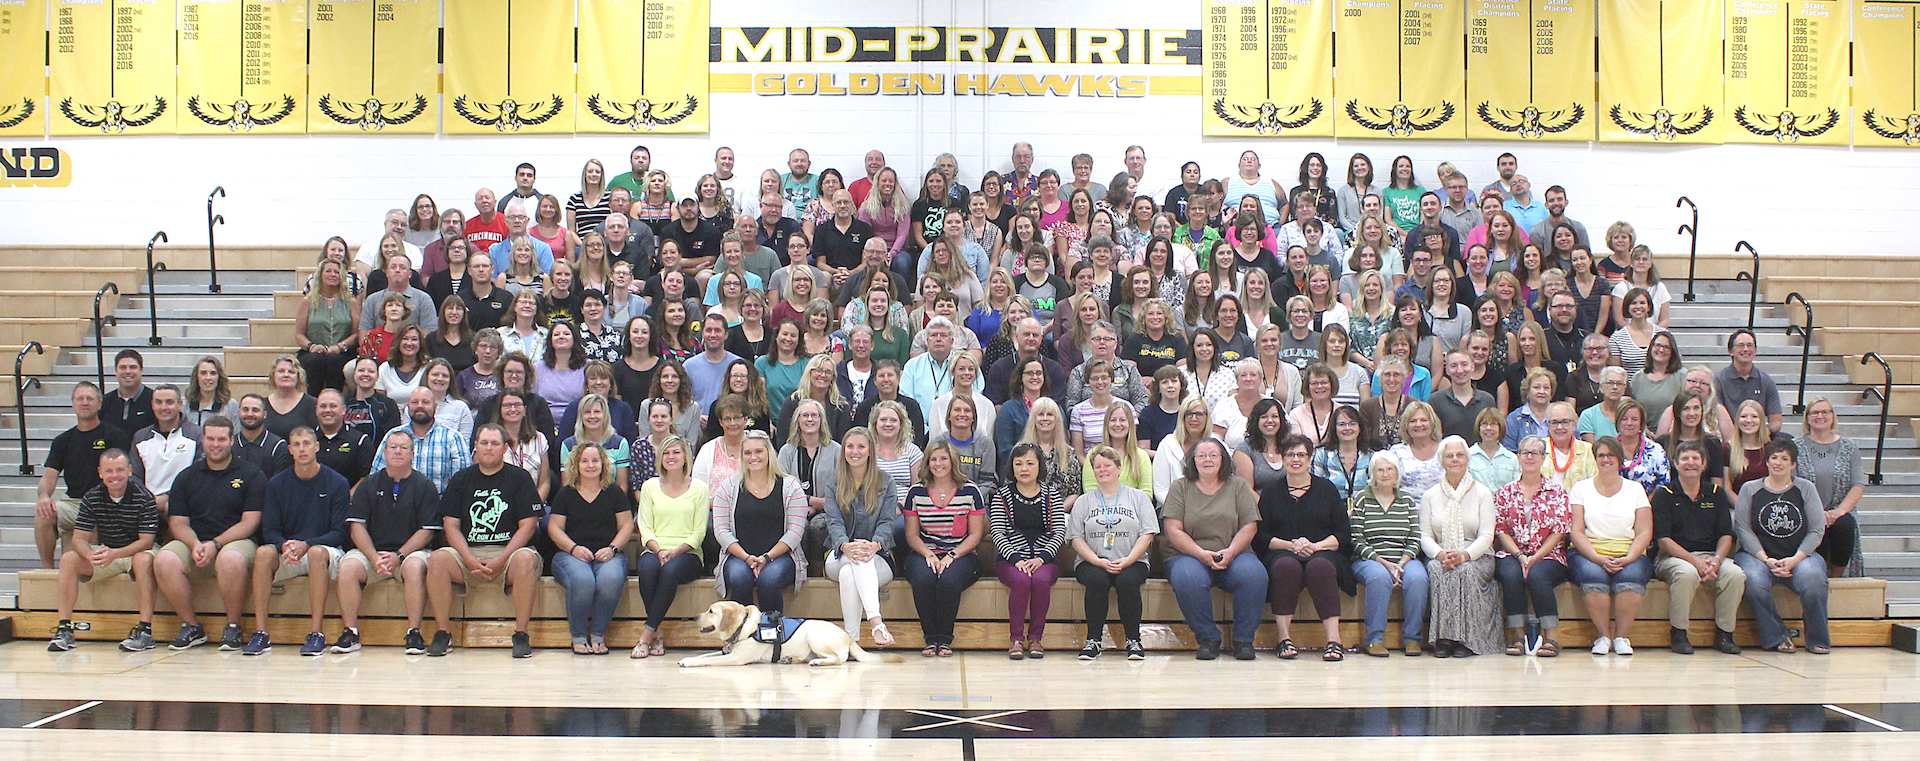 Entire Mid-Prairie Staff